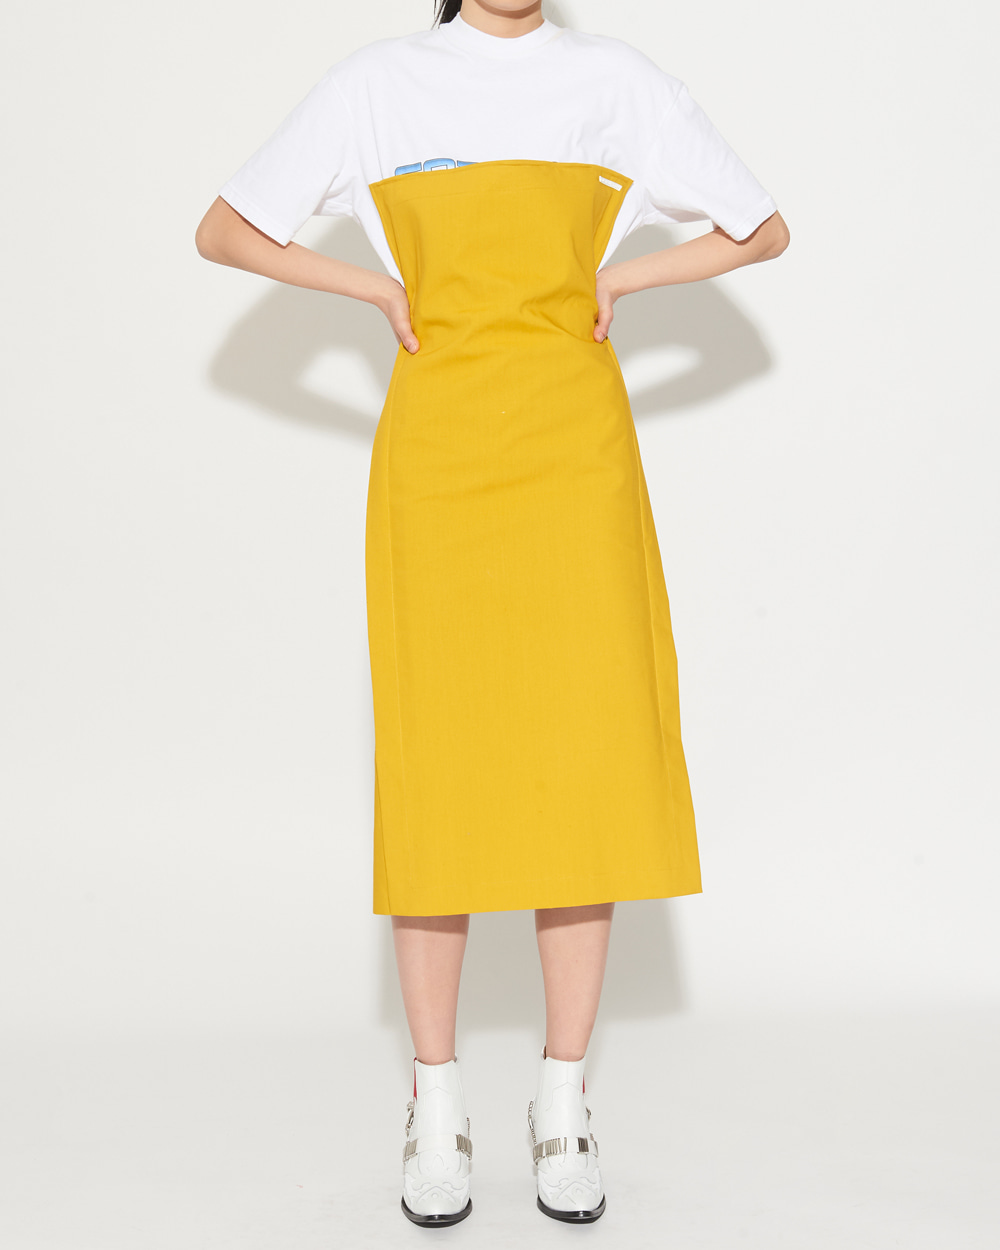 WIRED TUBE YELLOW DRESS